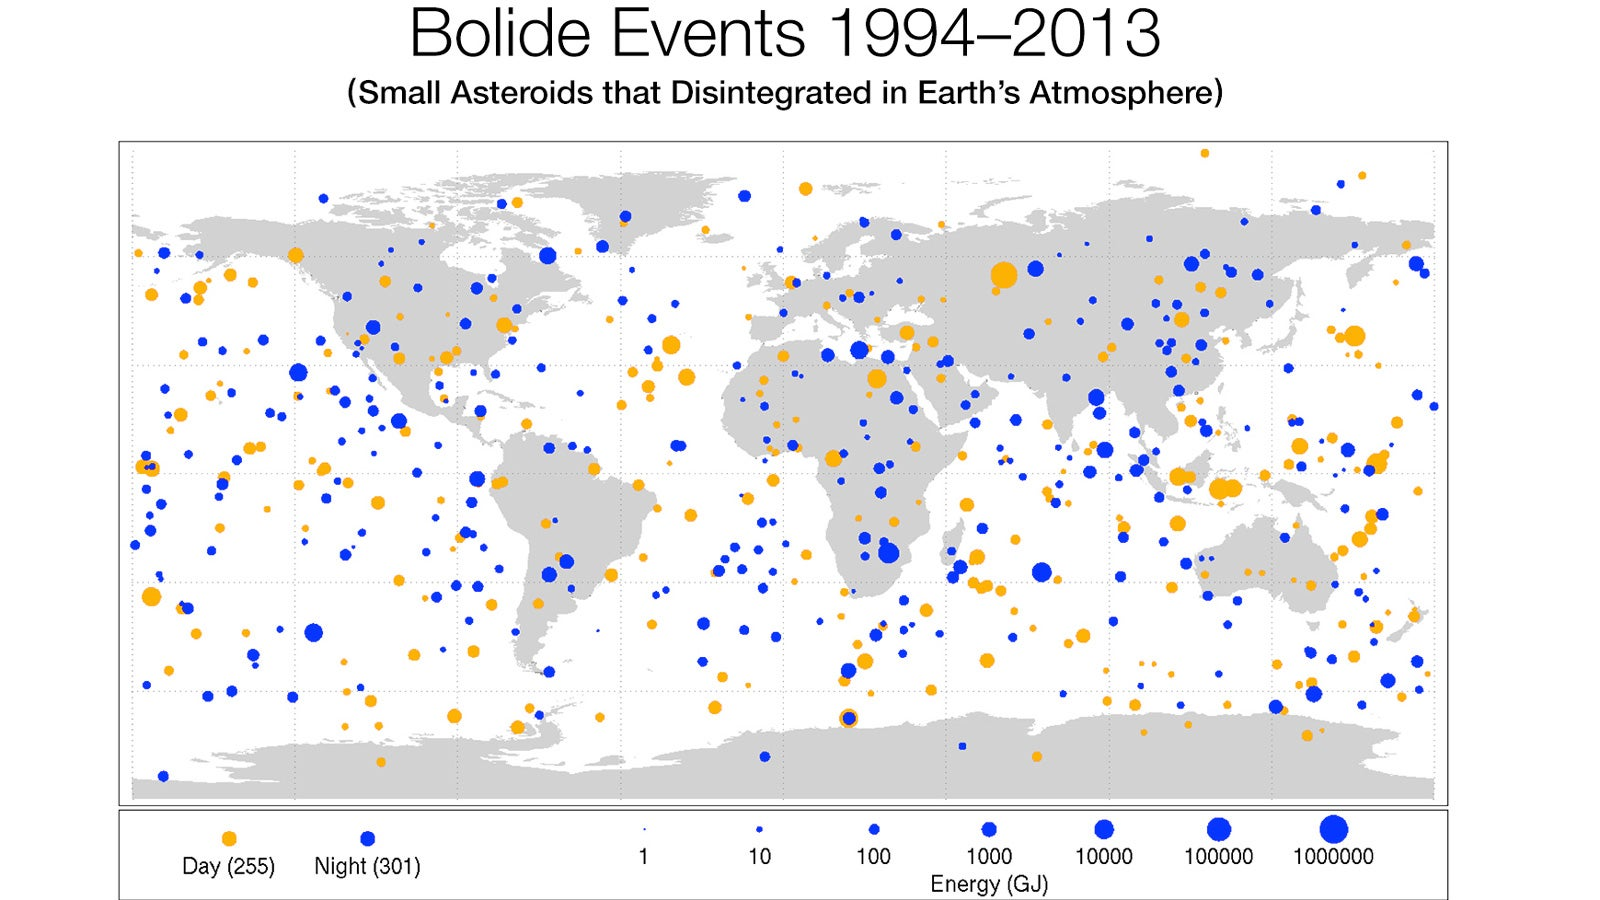 Here Are All 556 Asteroids That Bombarded Earth in the Past 20 Years